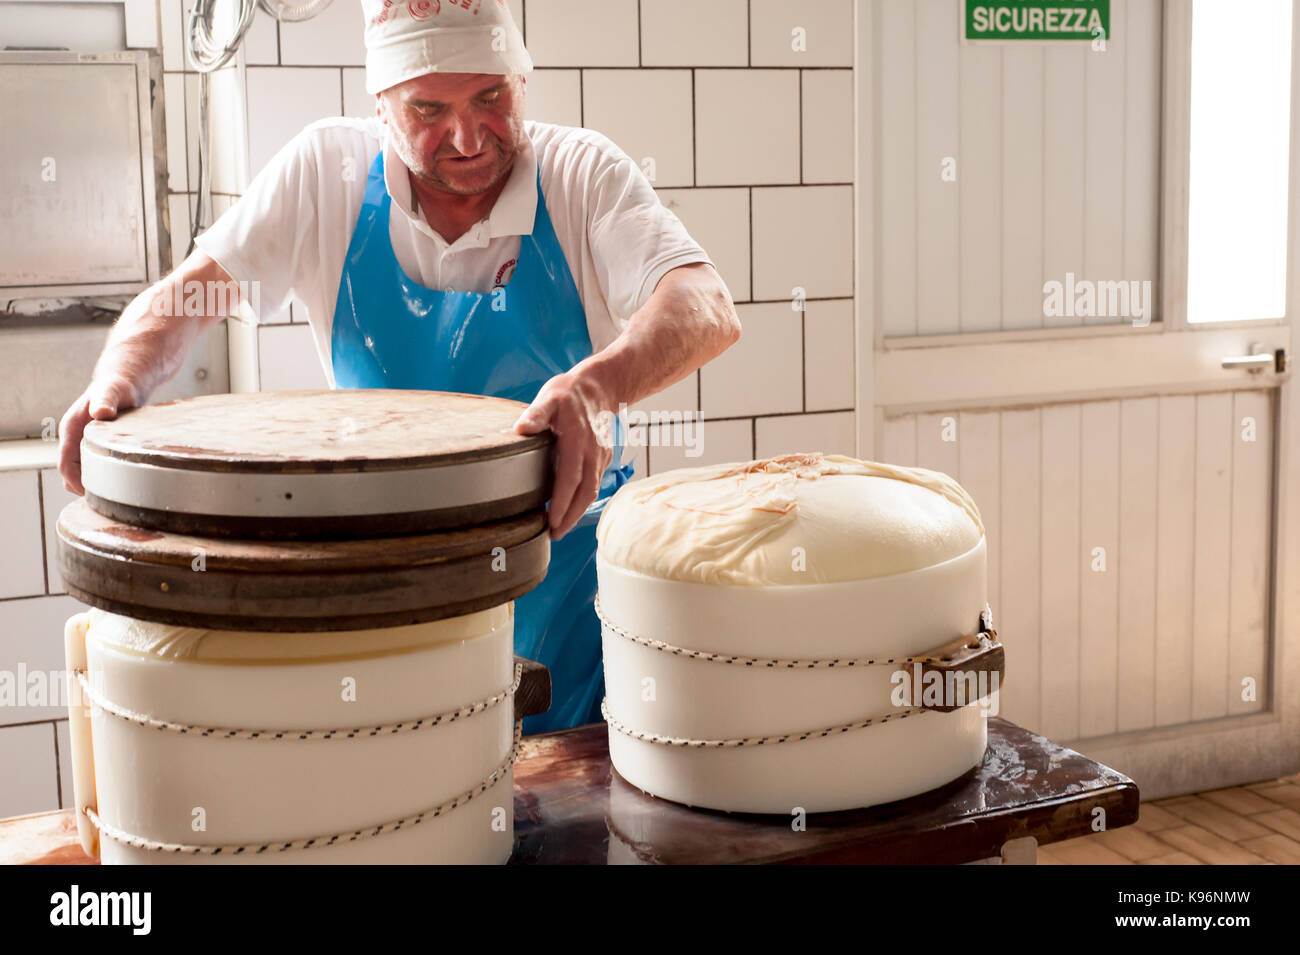 Workers encase the wrapped cheese in a 'fascera' mould during the Parmigiano-Reggiano cheese manufacturing - Stock Image